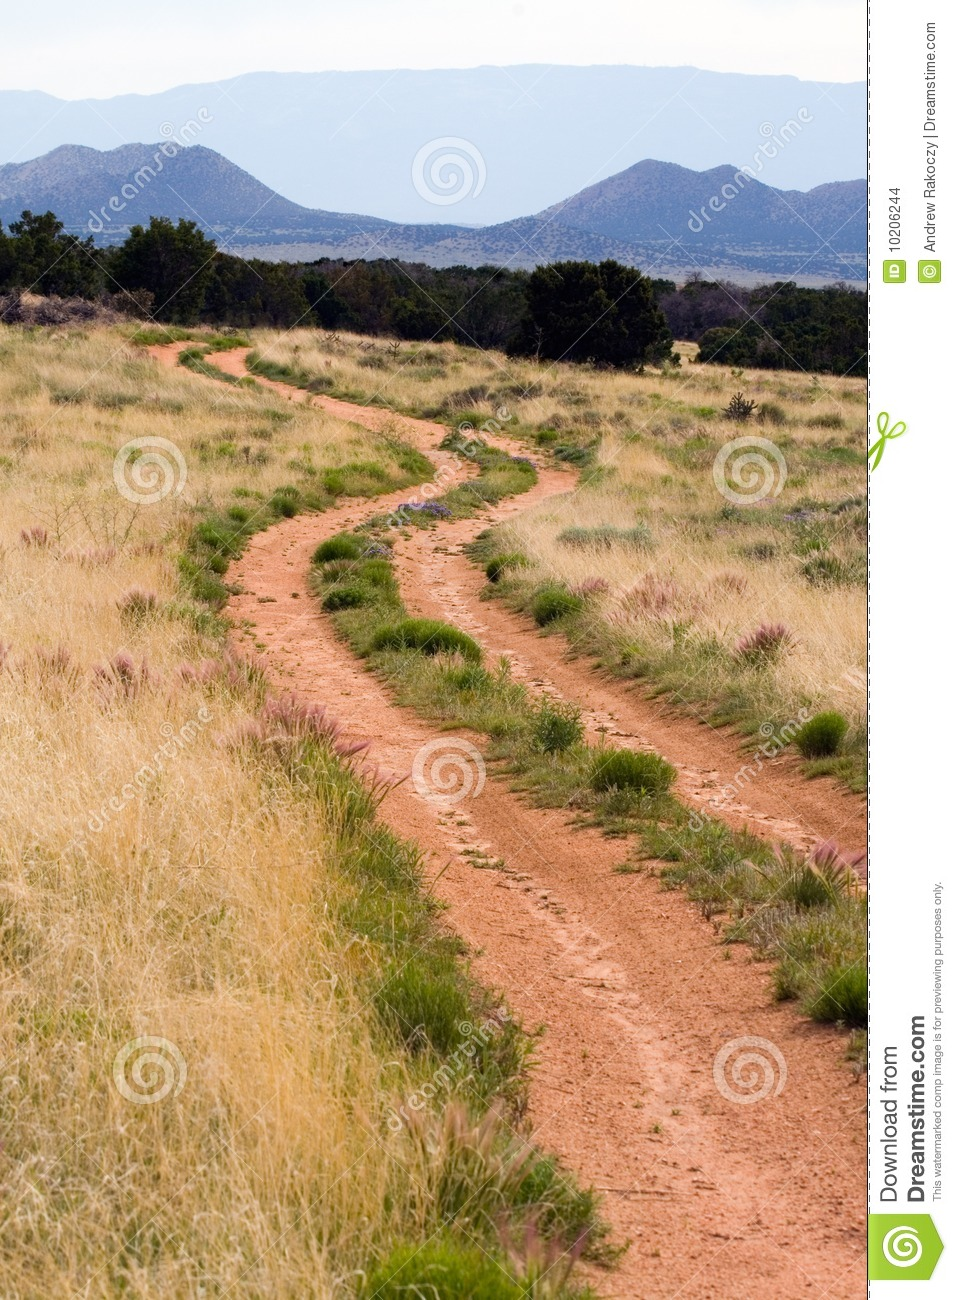 Mountain Road Clipart Dirt Road Mountain Scene